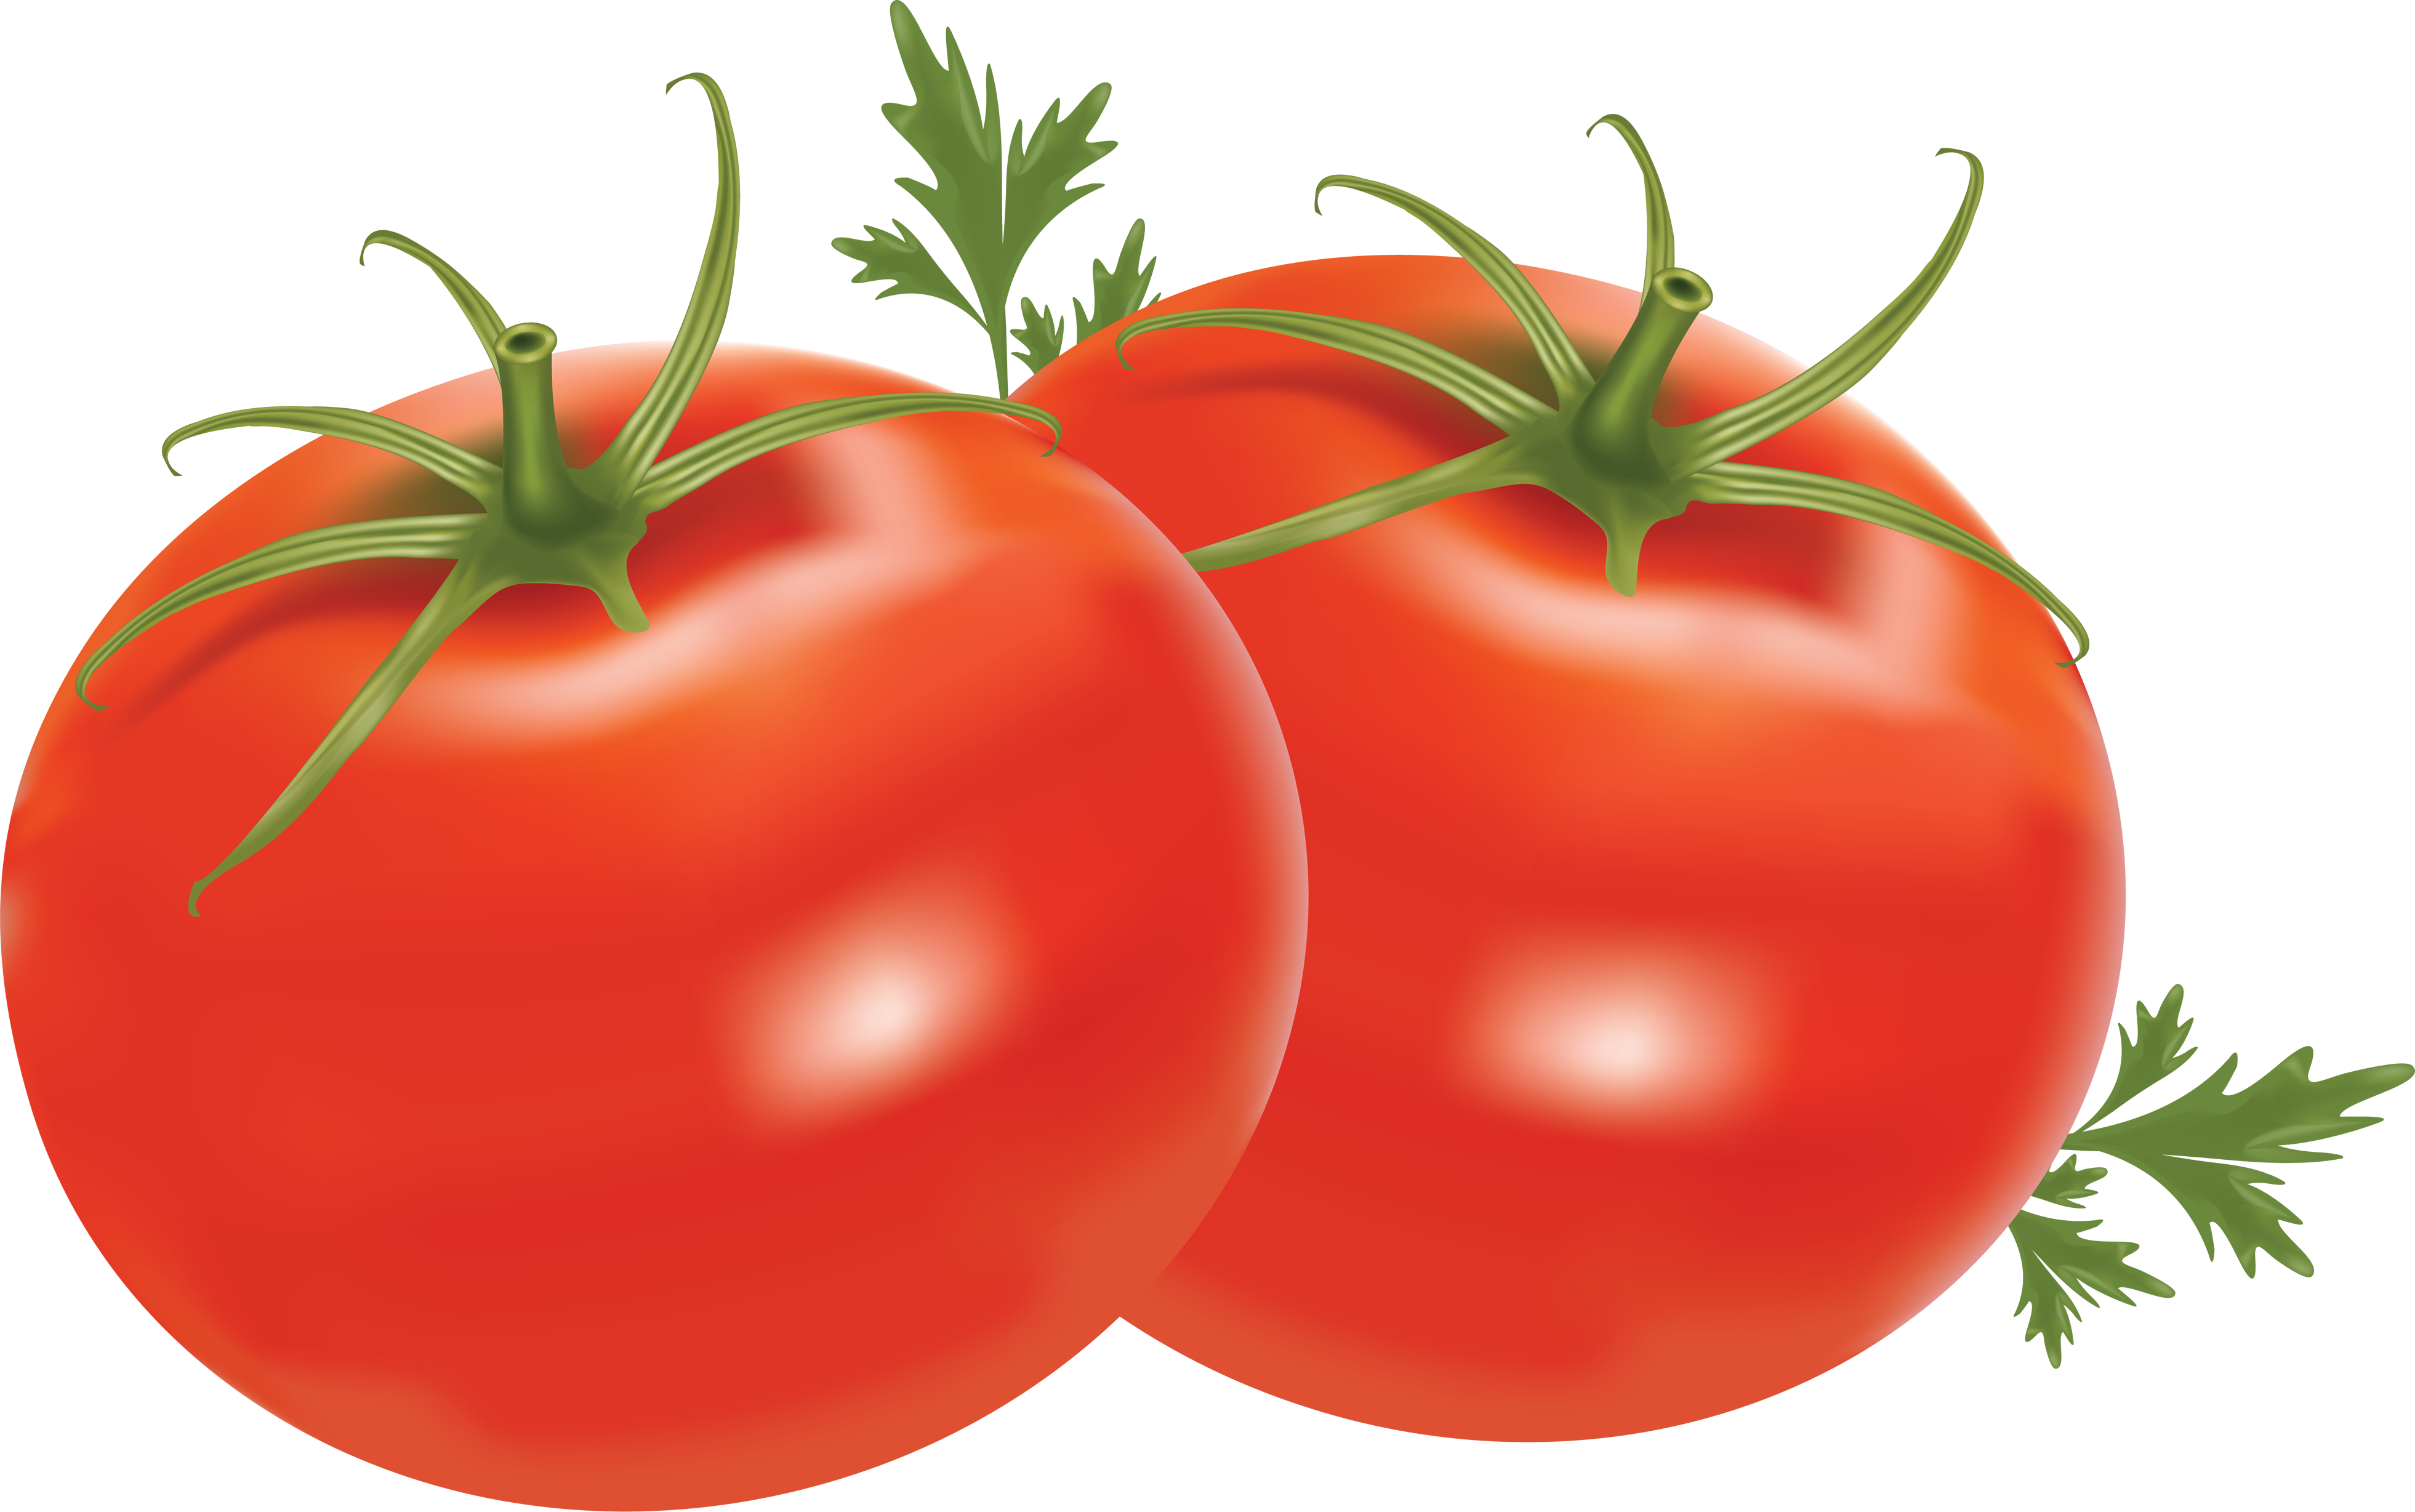 Tomatoes clipart tomato garden. Pin by hopeless on